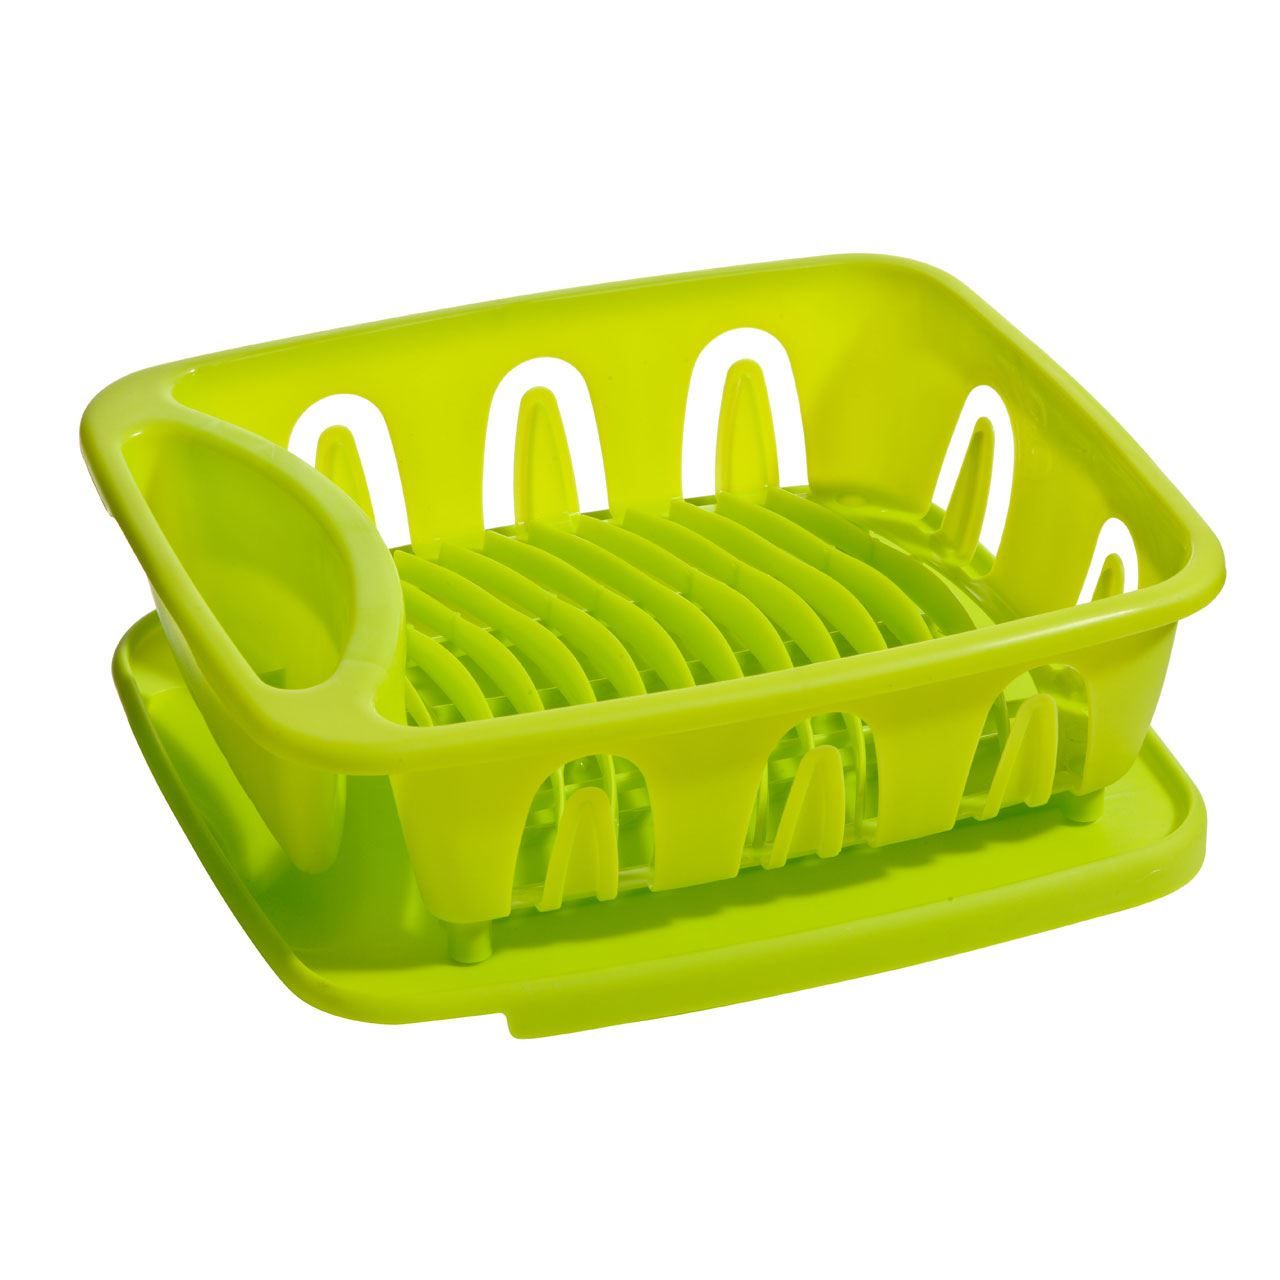 Lime Green And Black Kitchen Accessories: Dish Drainer Plastic Removable Tray Kitchen Accessories